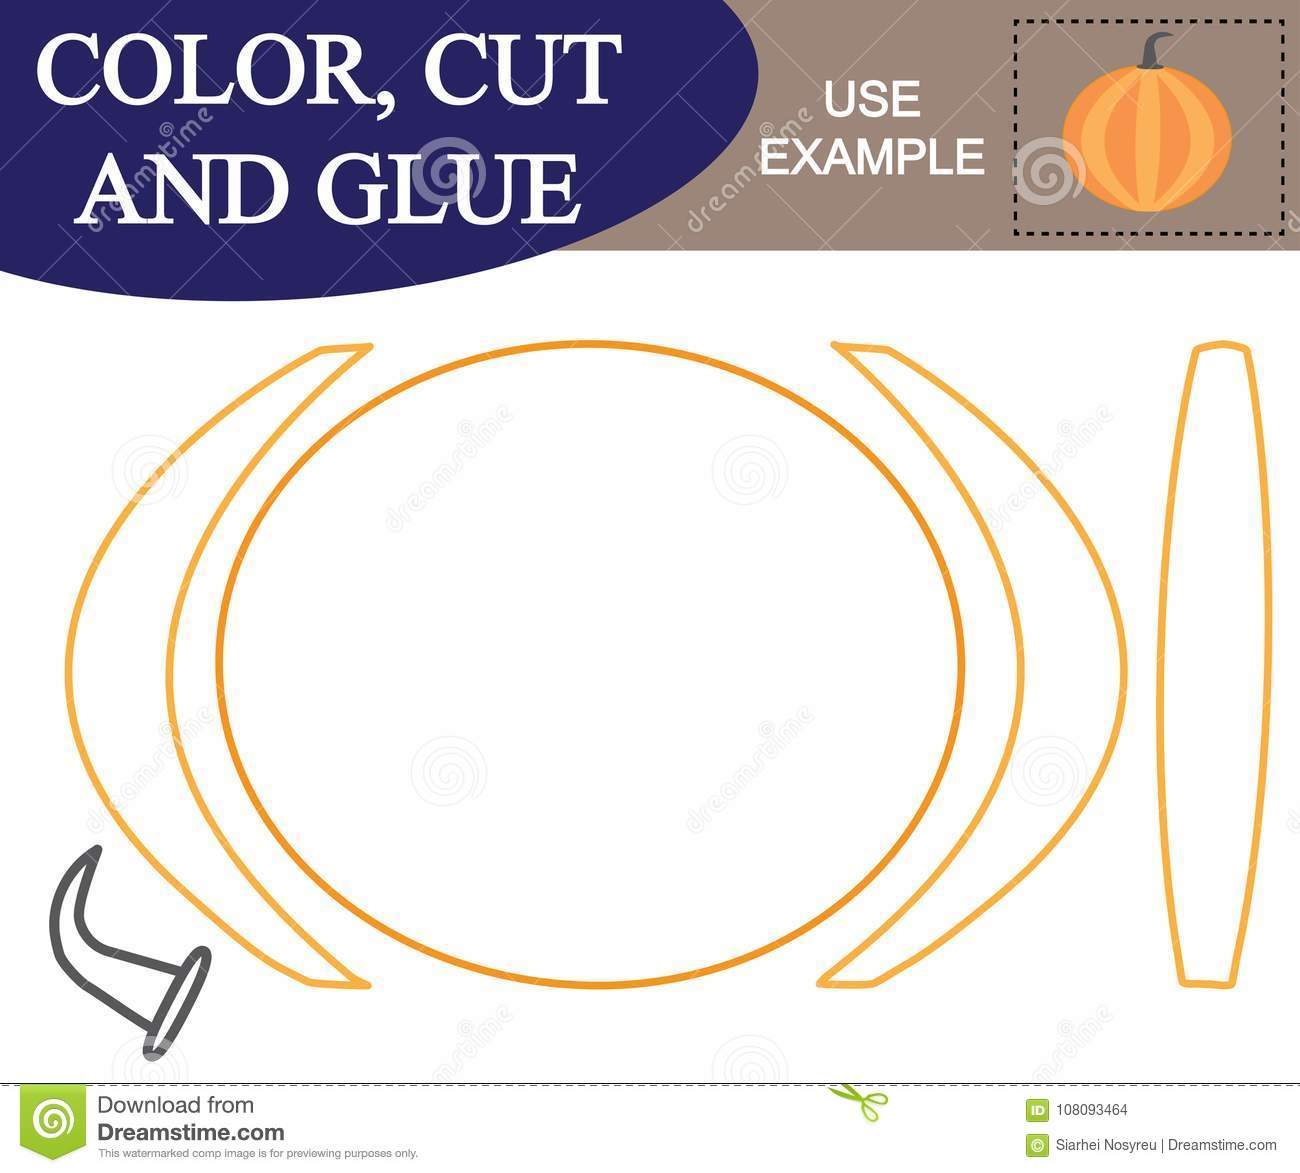 Create The Image Of Pumpkin Worksheet Color Cut And